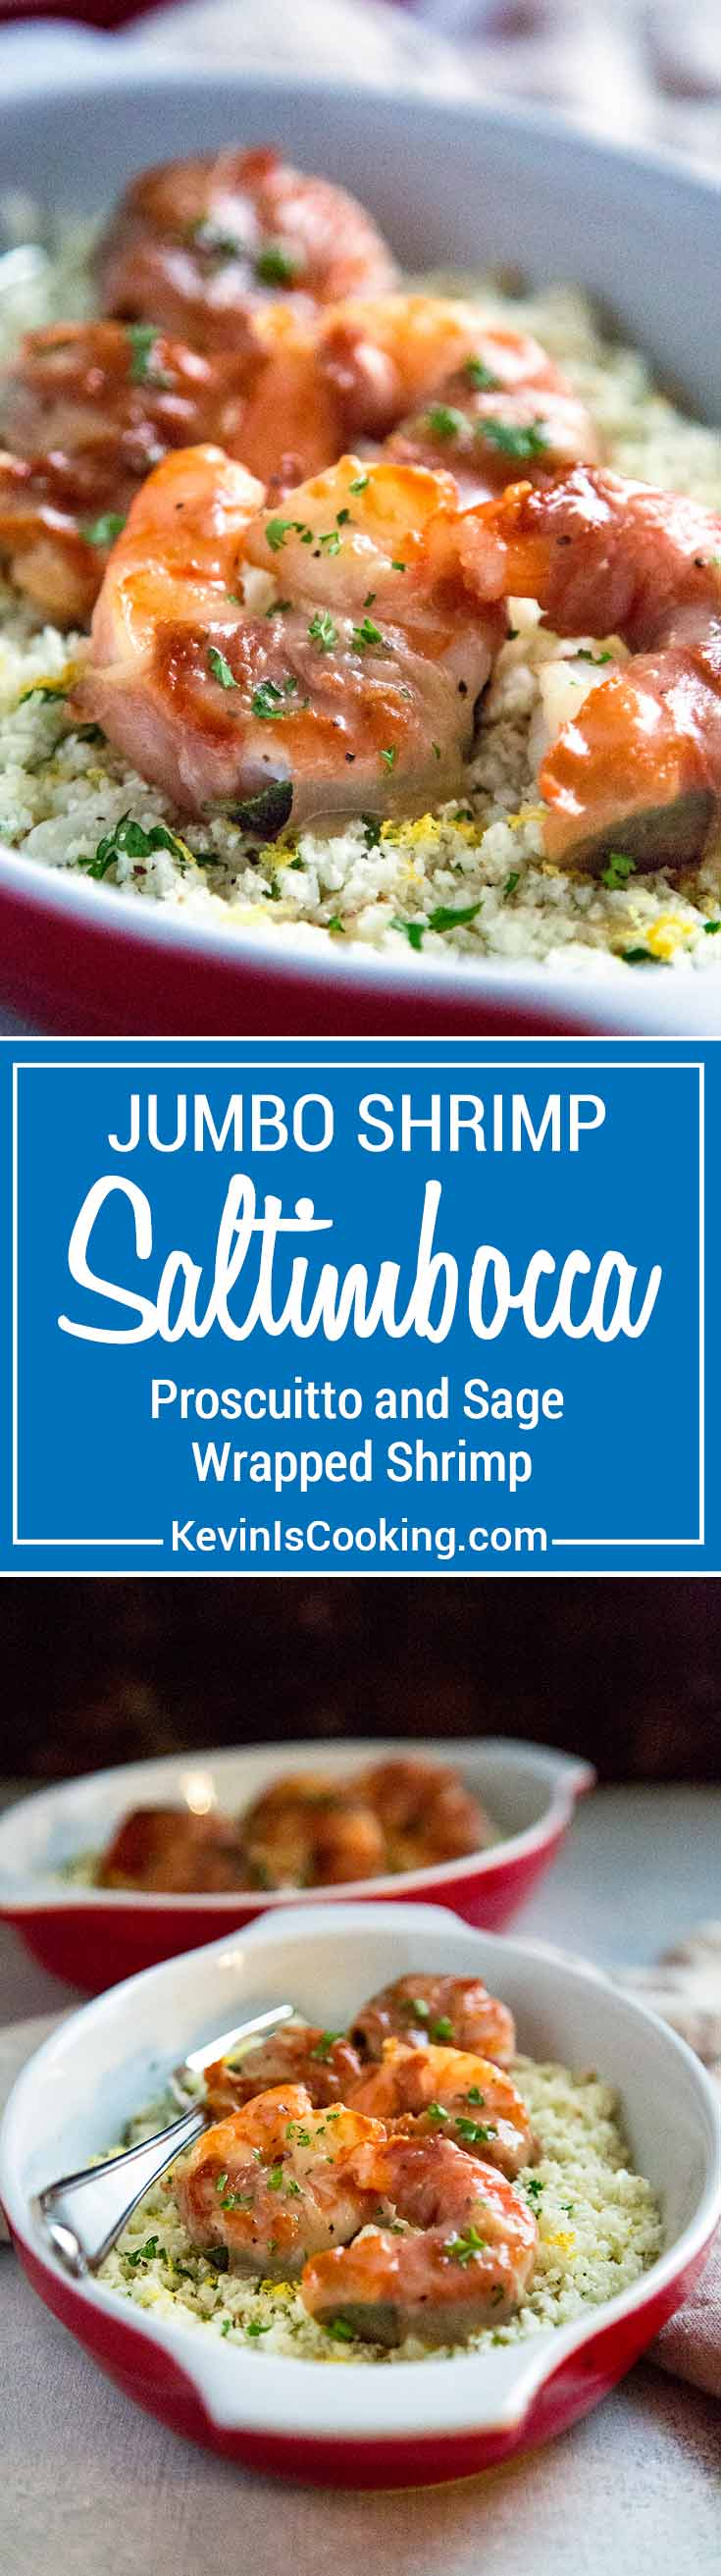 Instead of using the traditional veal for this recipe I thought using jumbo shrimp would make a wonderful substitute. I wasn't wrong. This Shrimp Saltimbocca is amazing!